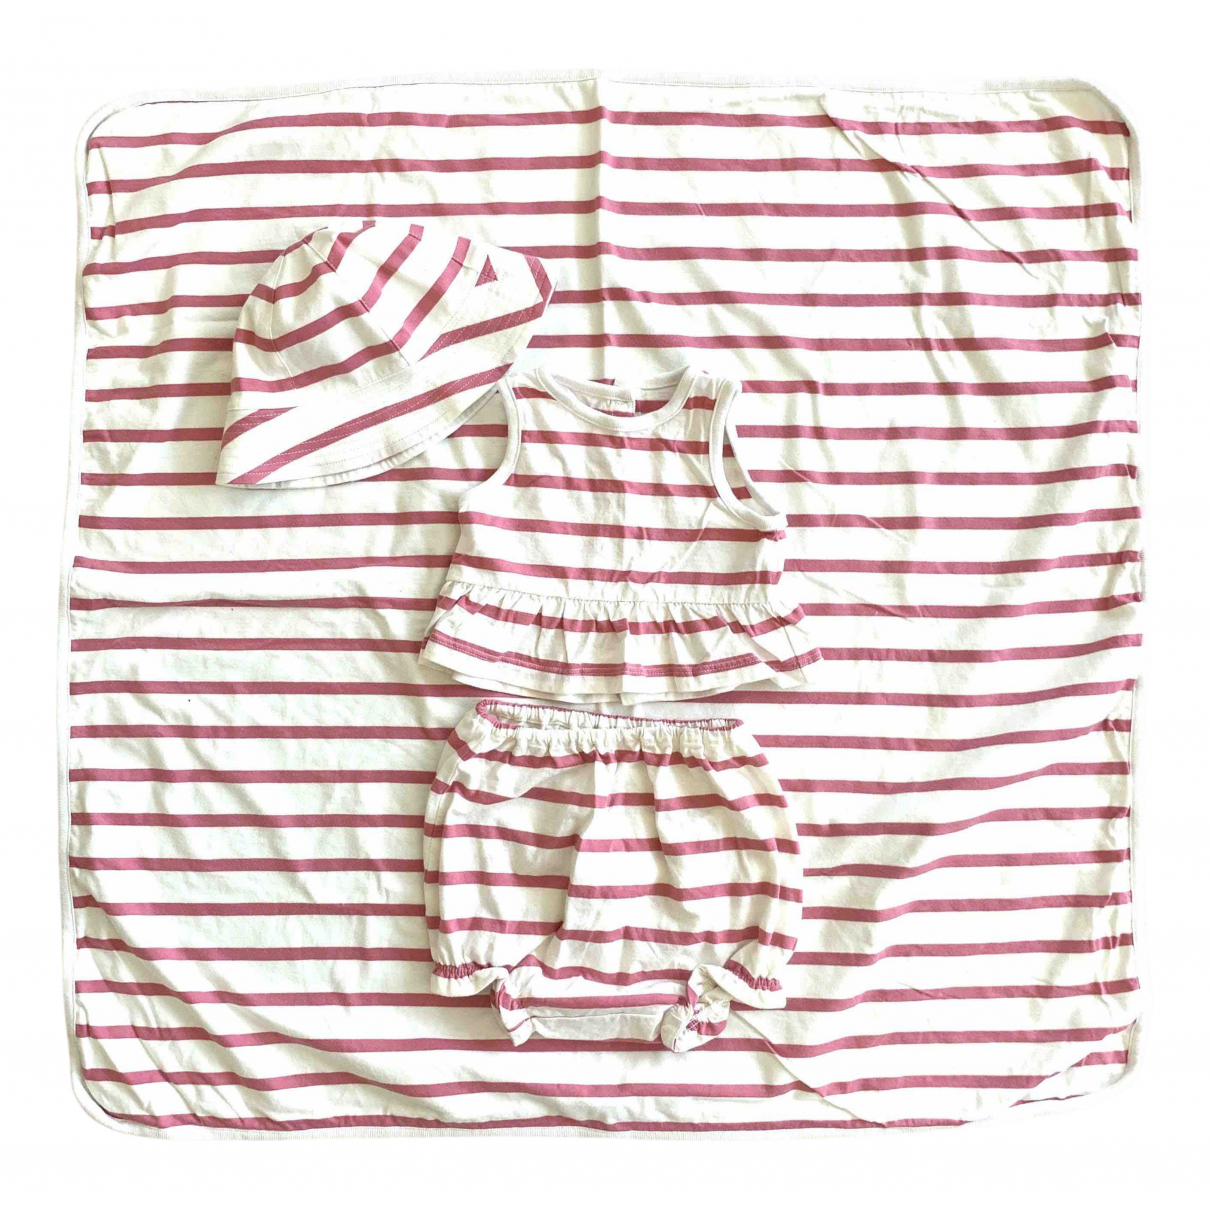 Burberry N Pink Cotton Outfits for Kids 3 months - until 24 inches UK